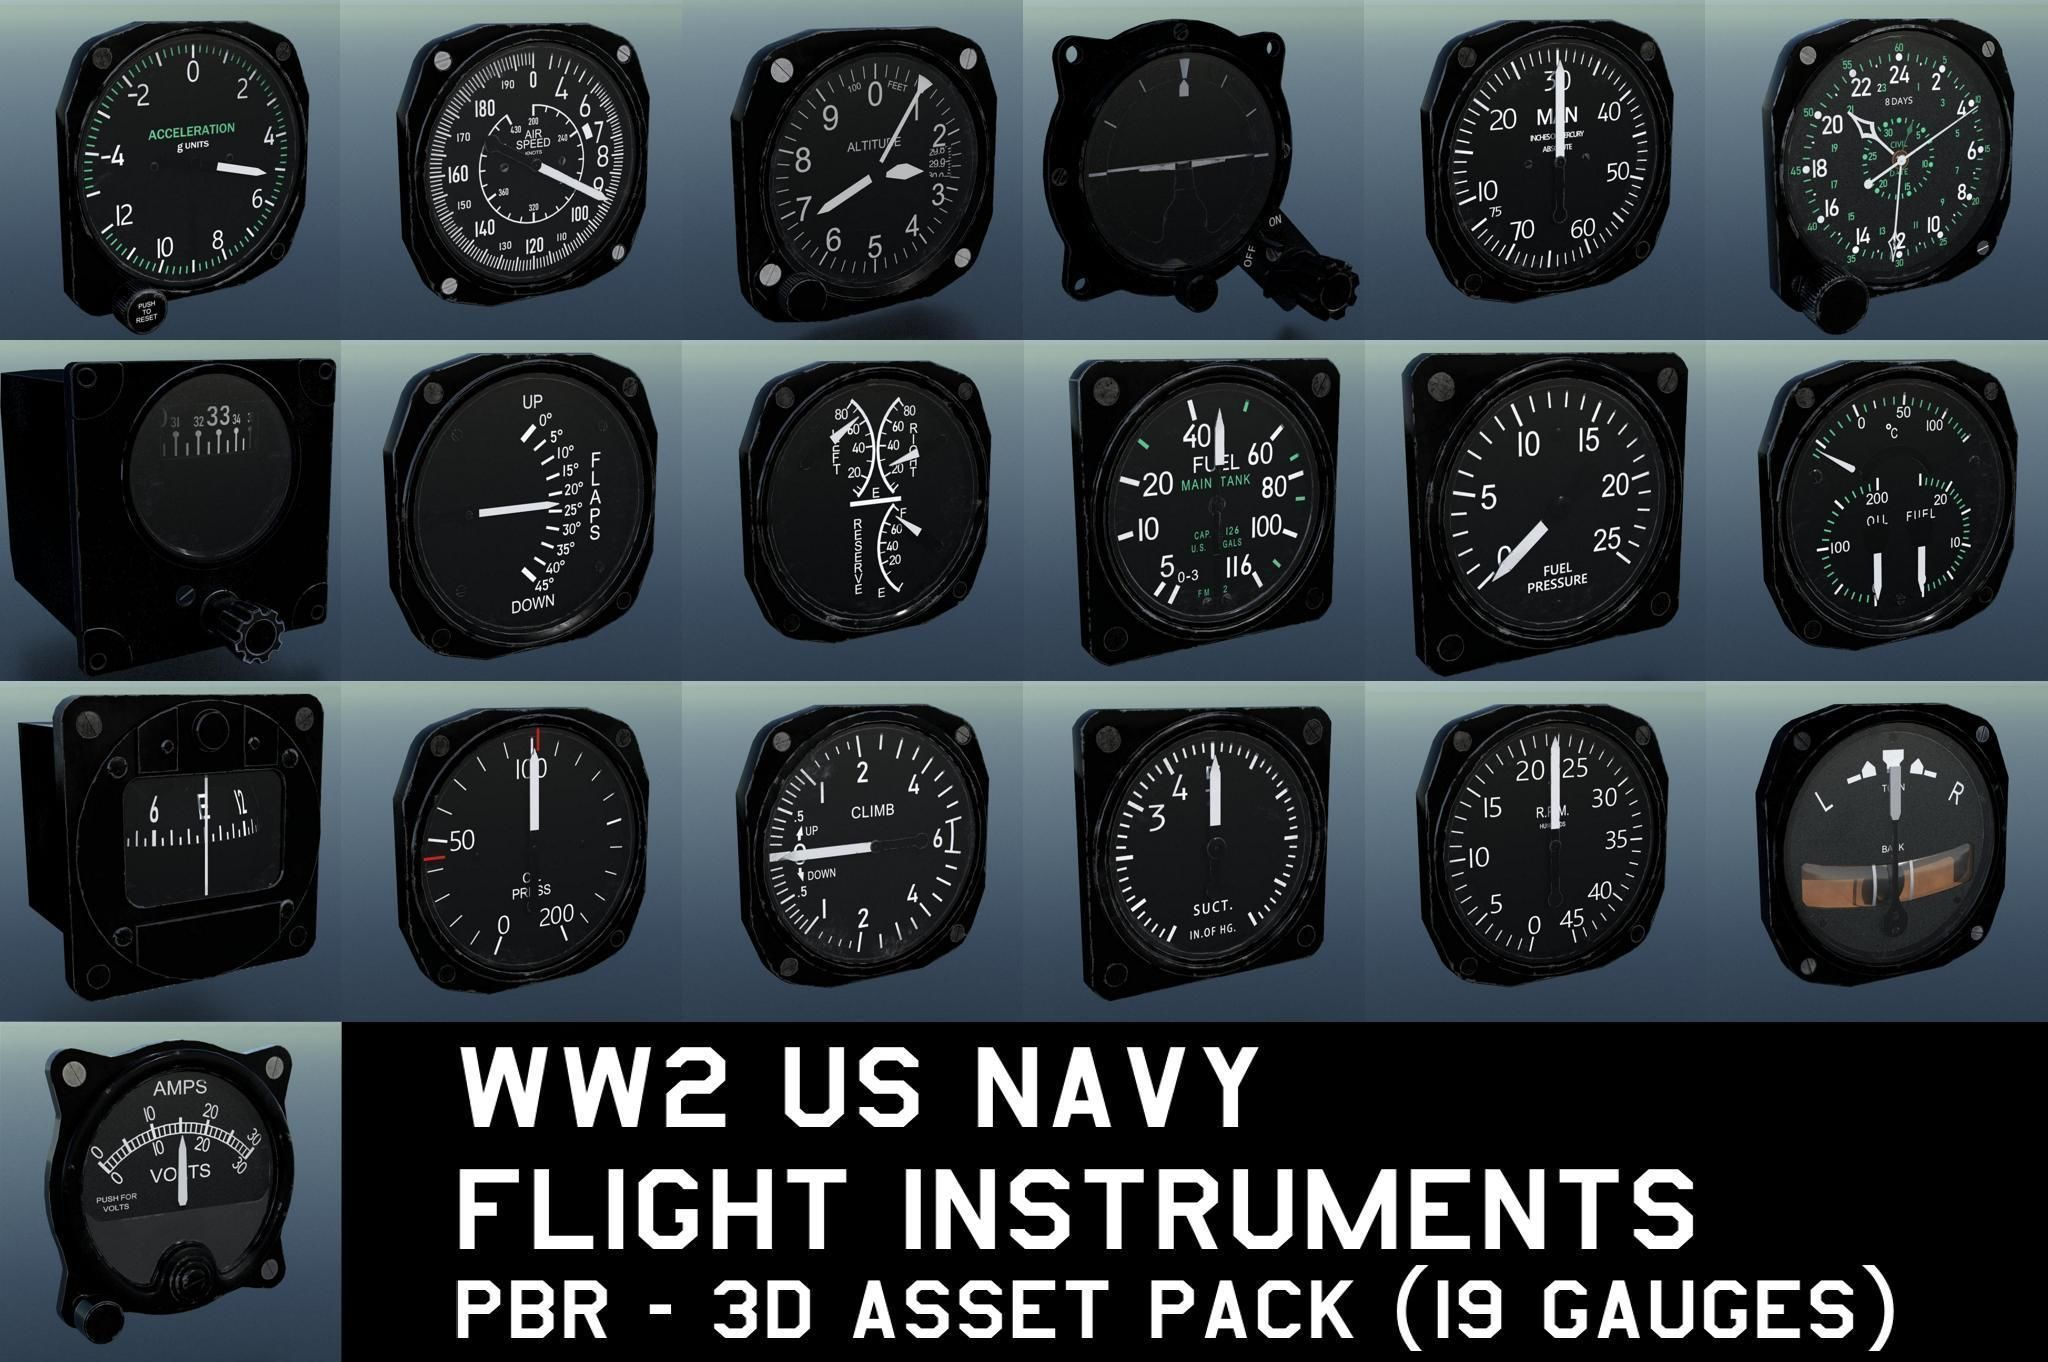 WW2 US NAVY FLIGHT INSTRUMENTS - ASSET PACK